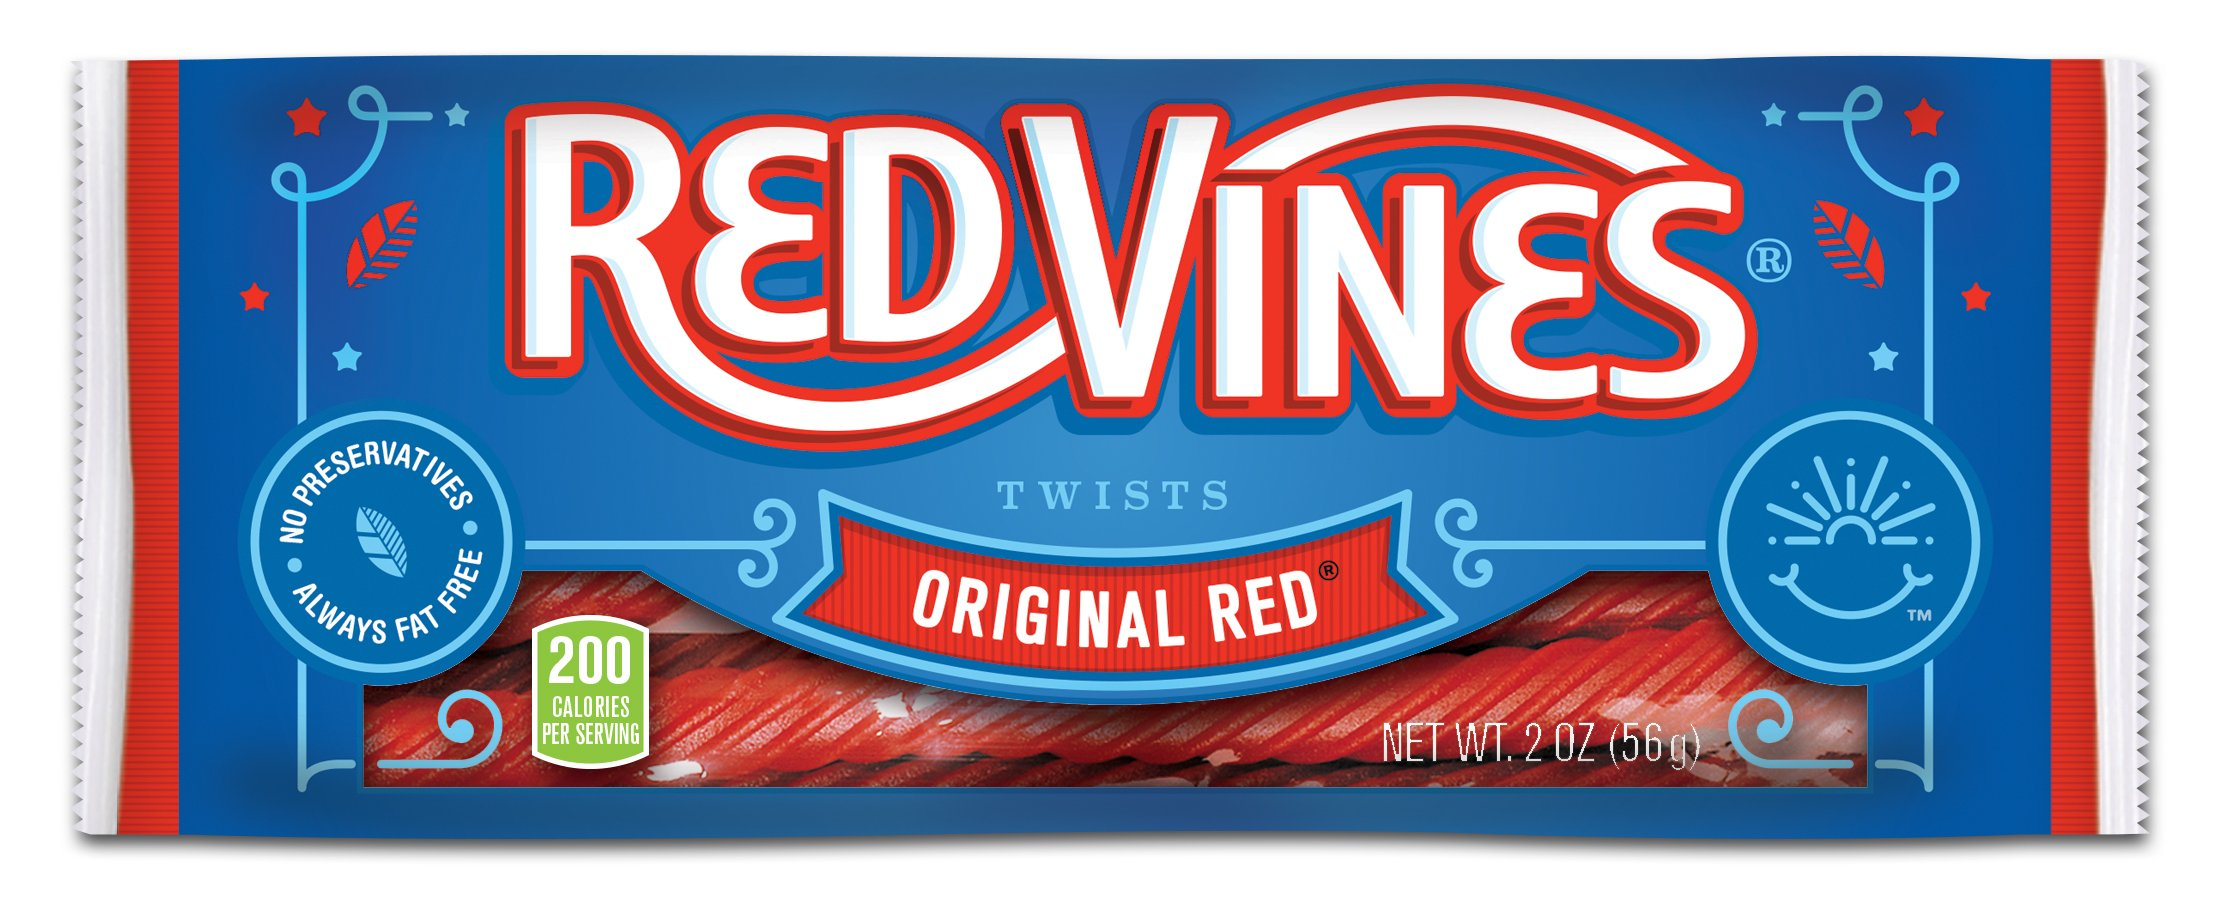 Red Vines Original Red Licorice Twists 2oz Bag (Pack of 16) by Red Vines